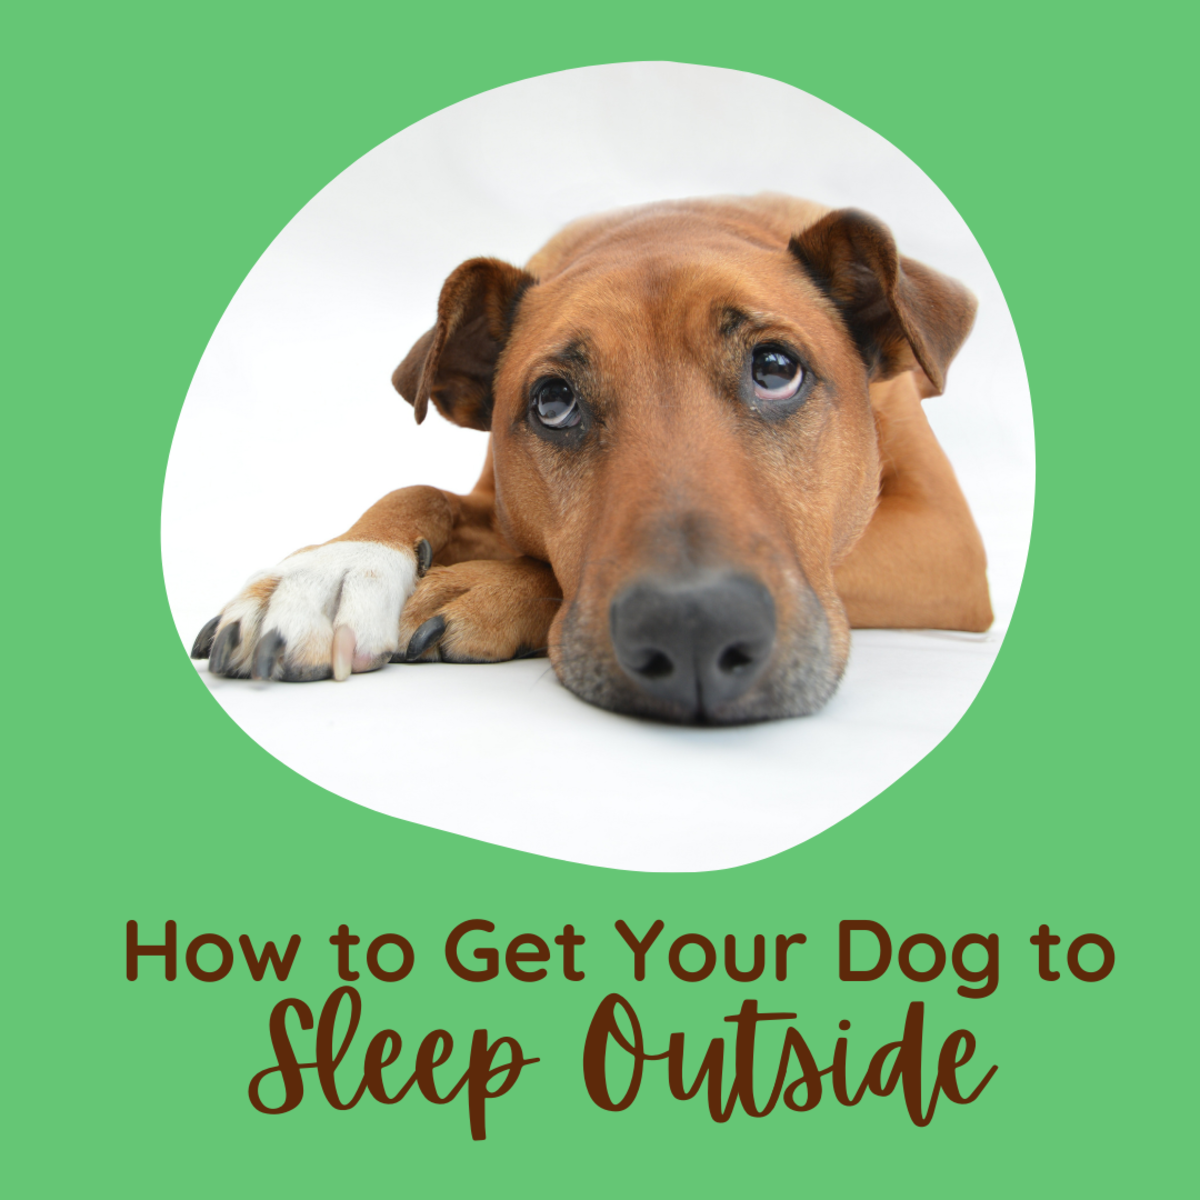 Train your dog to sleep outside